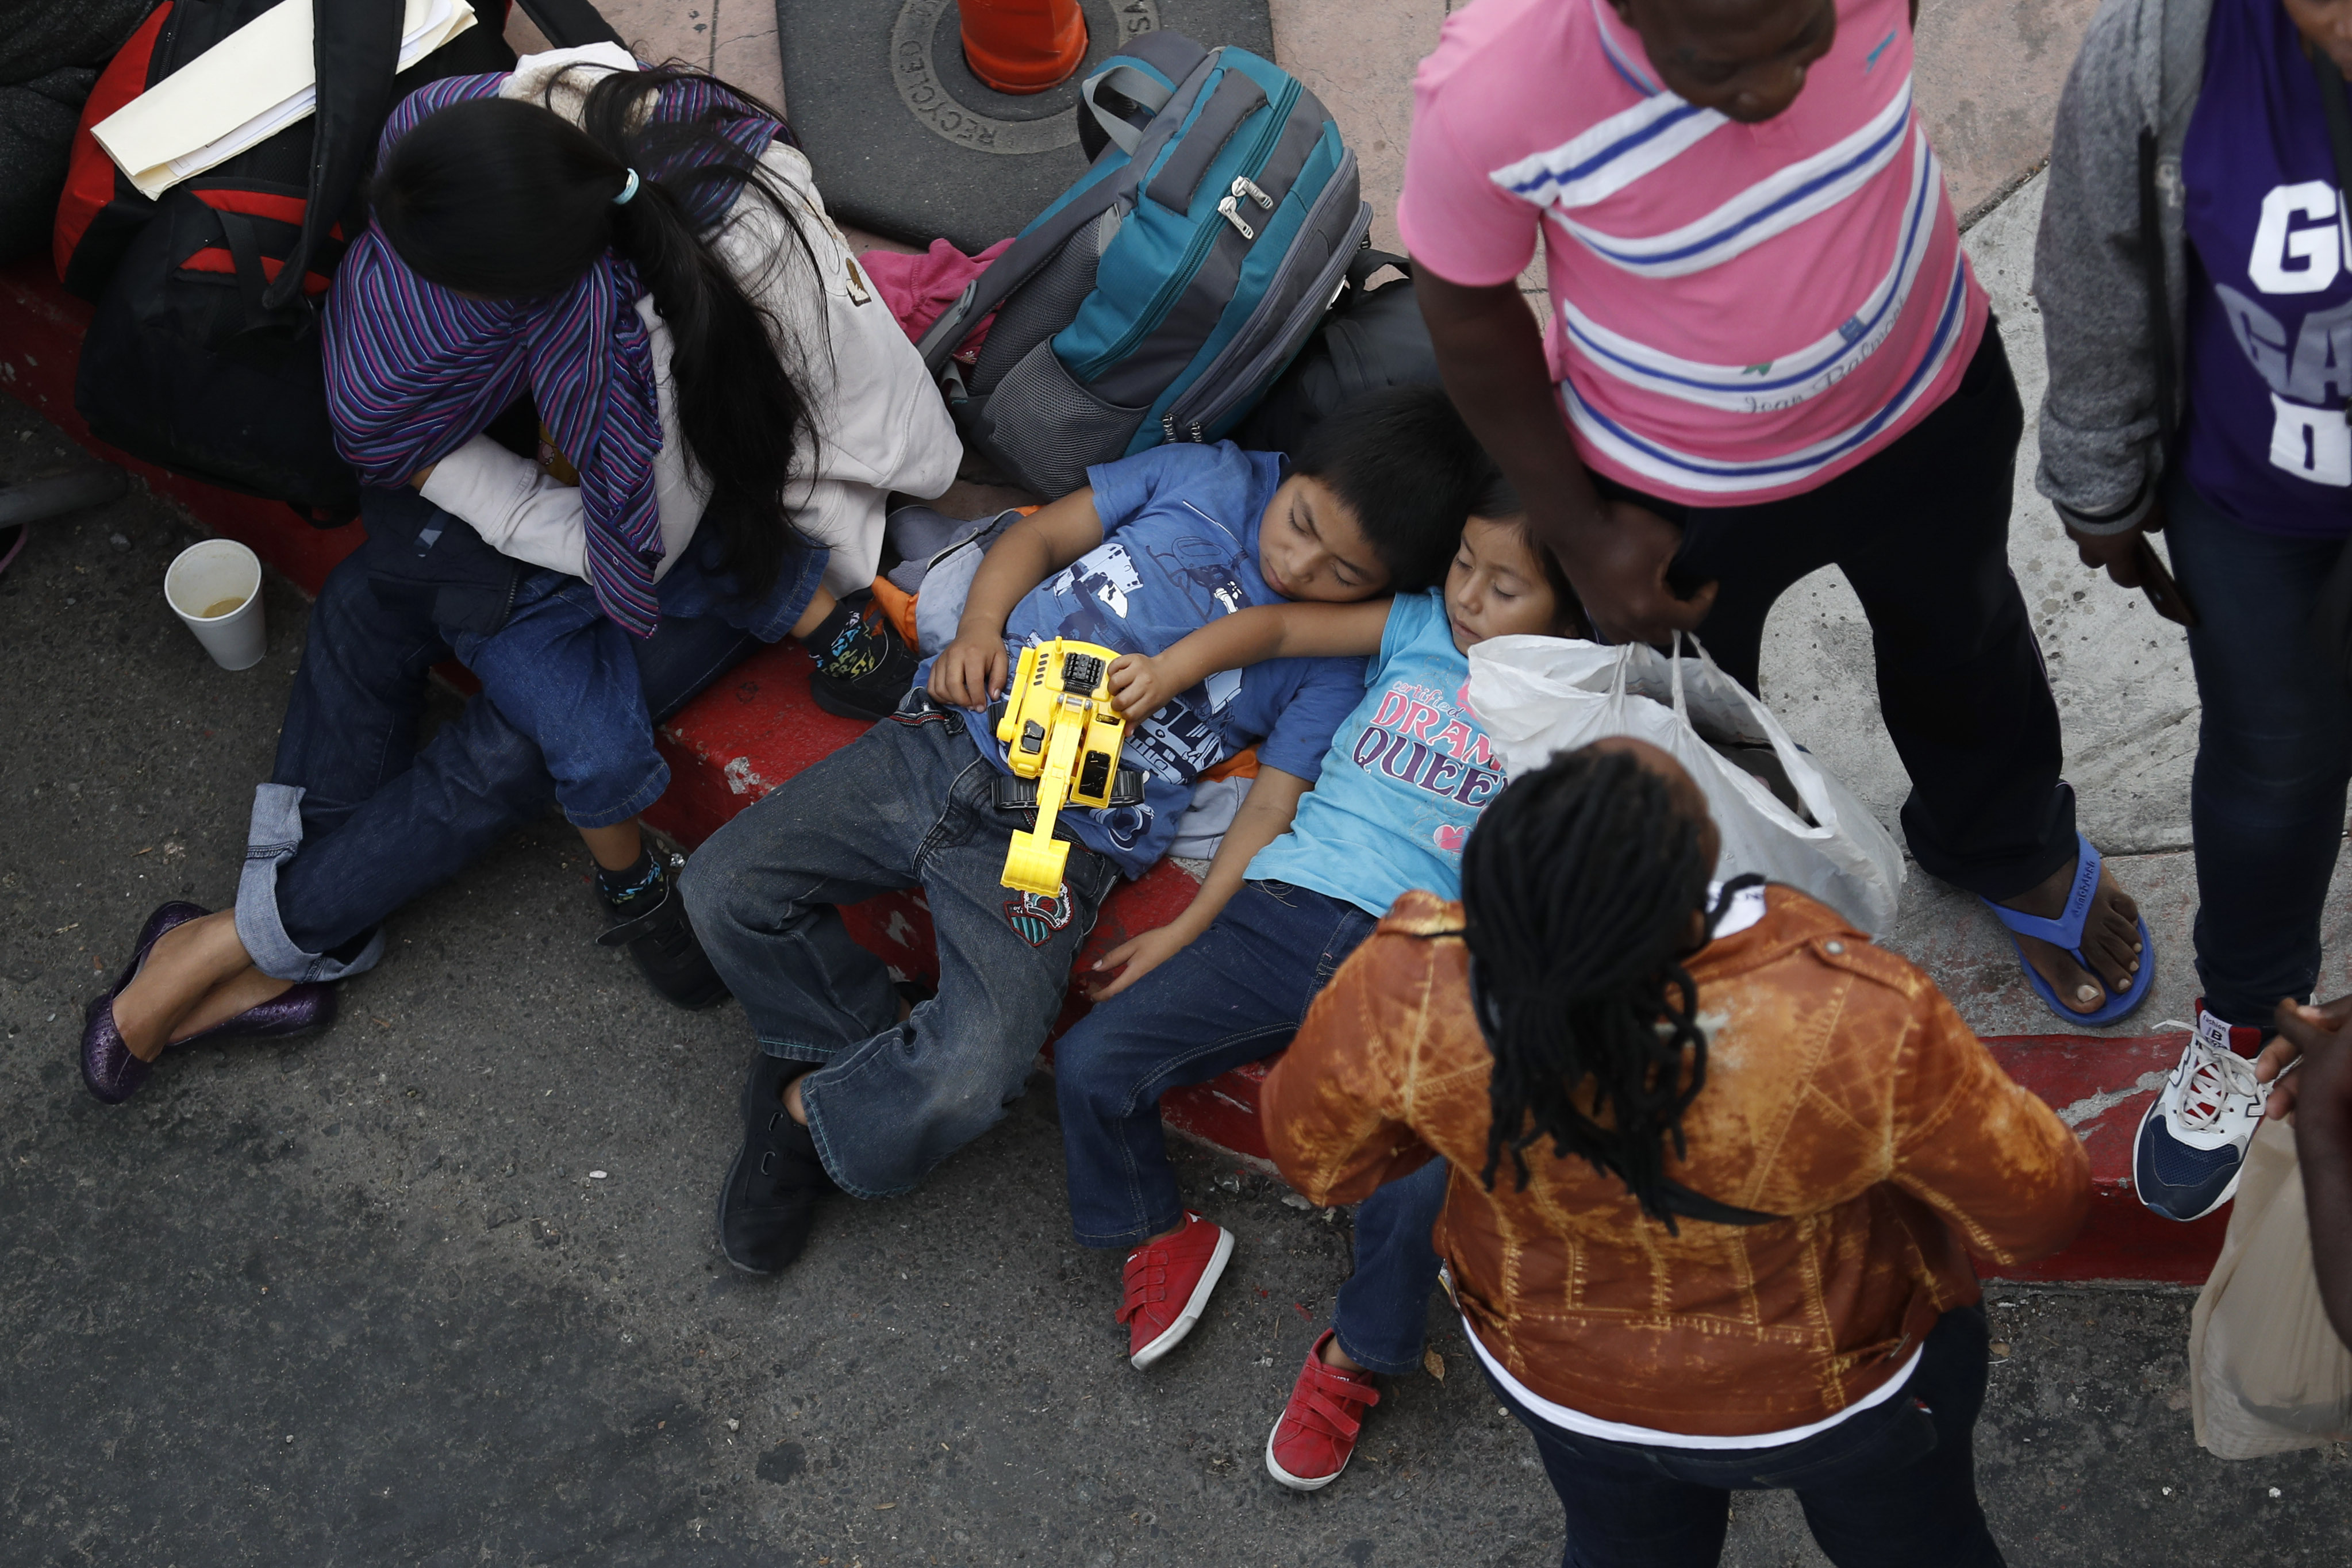 Trumps new asylum rules go into effect, and opponents sue